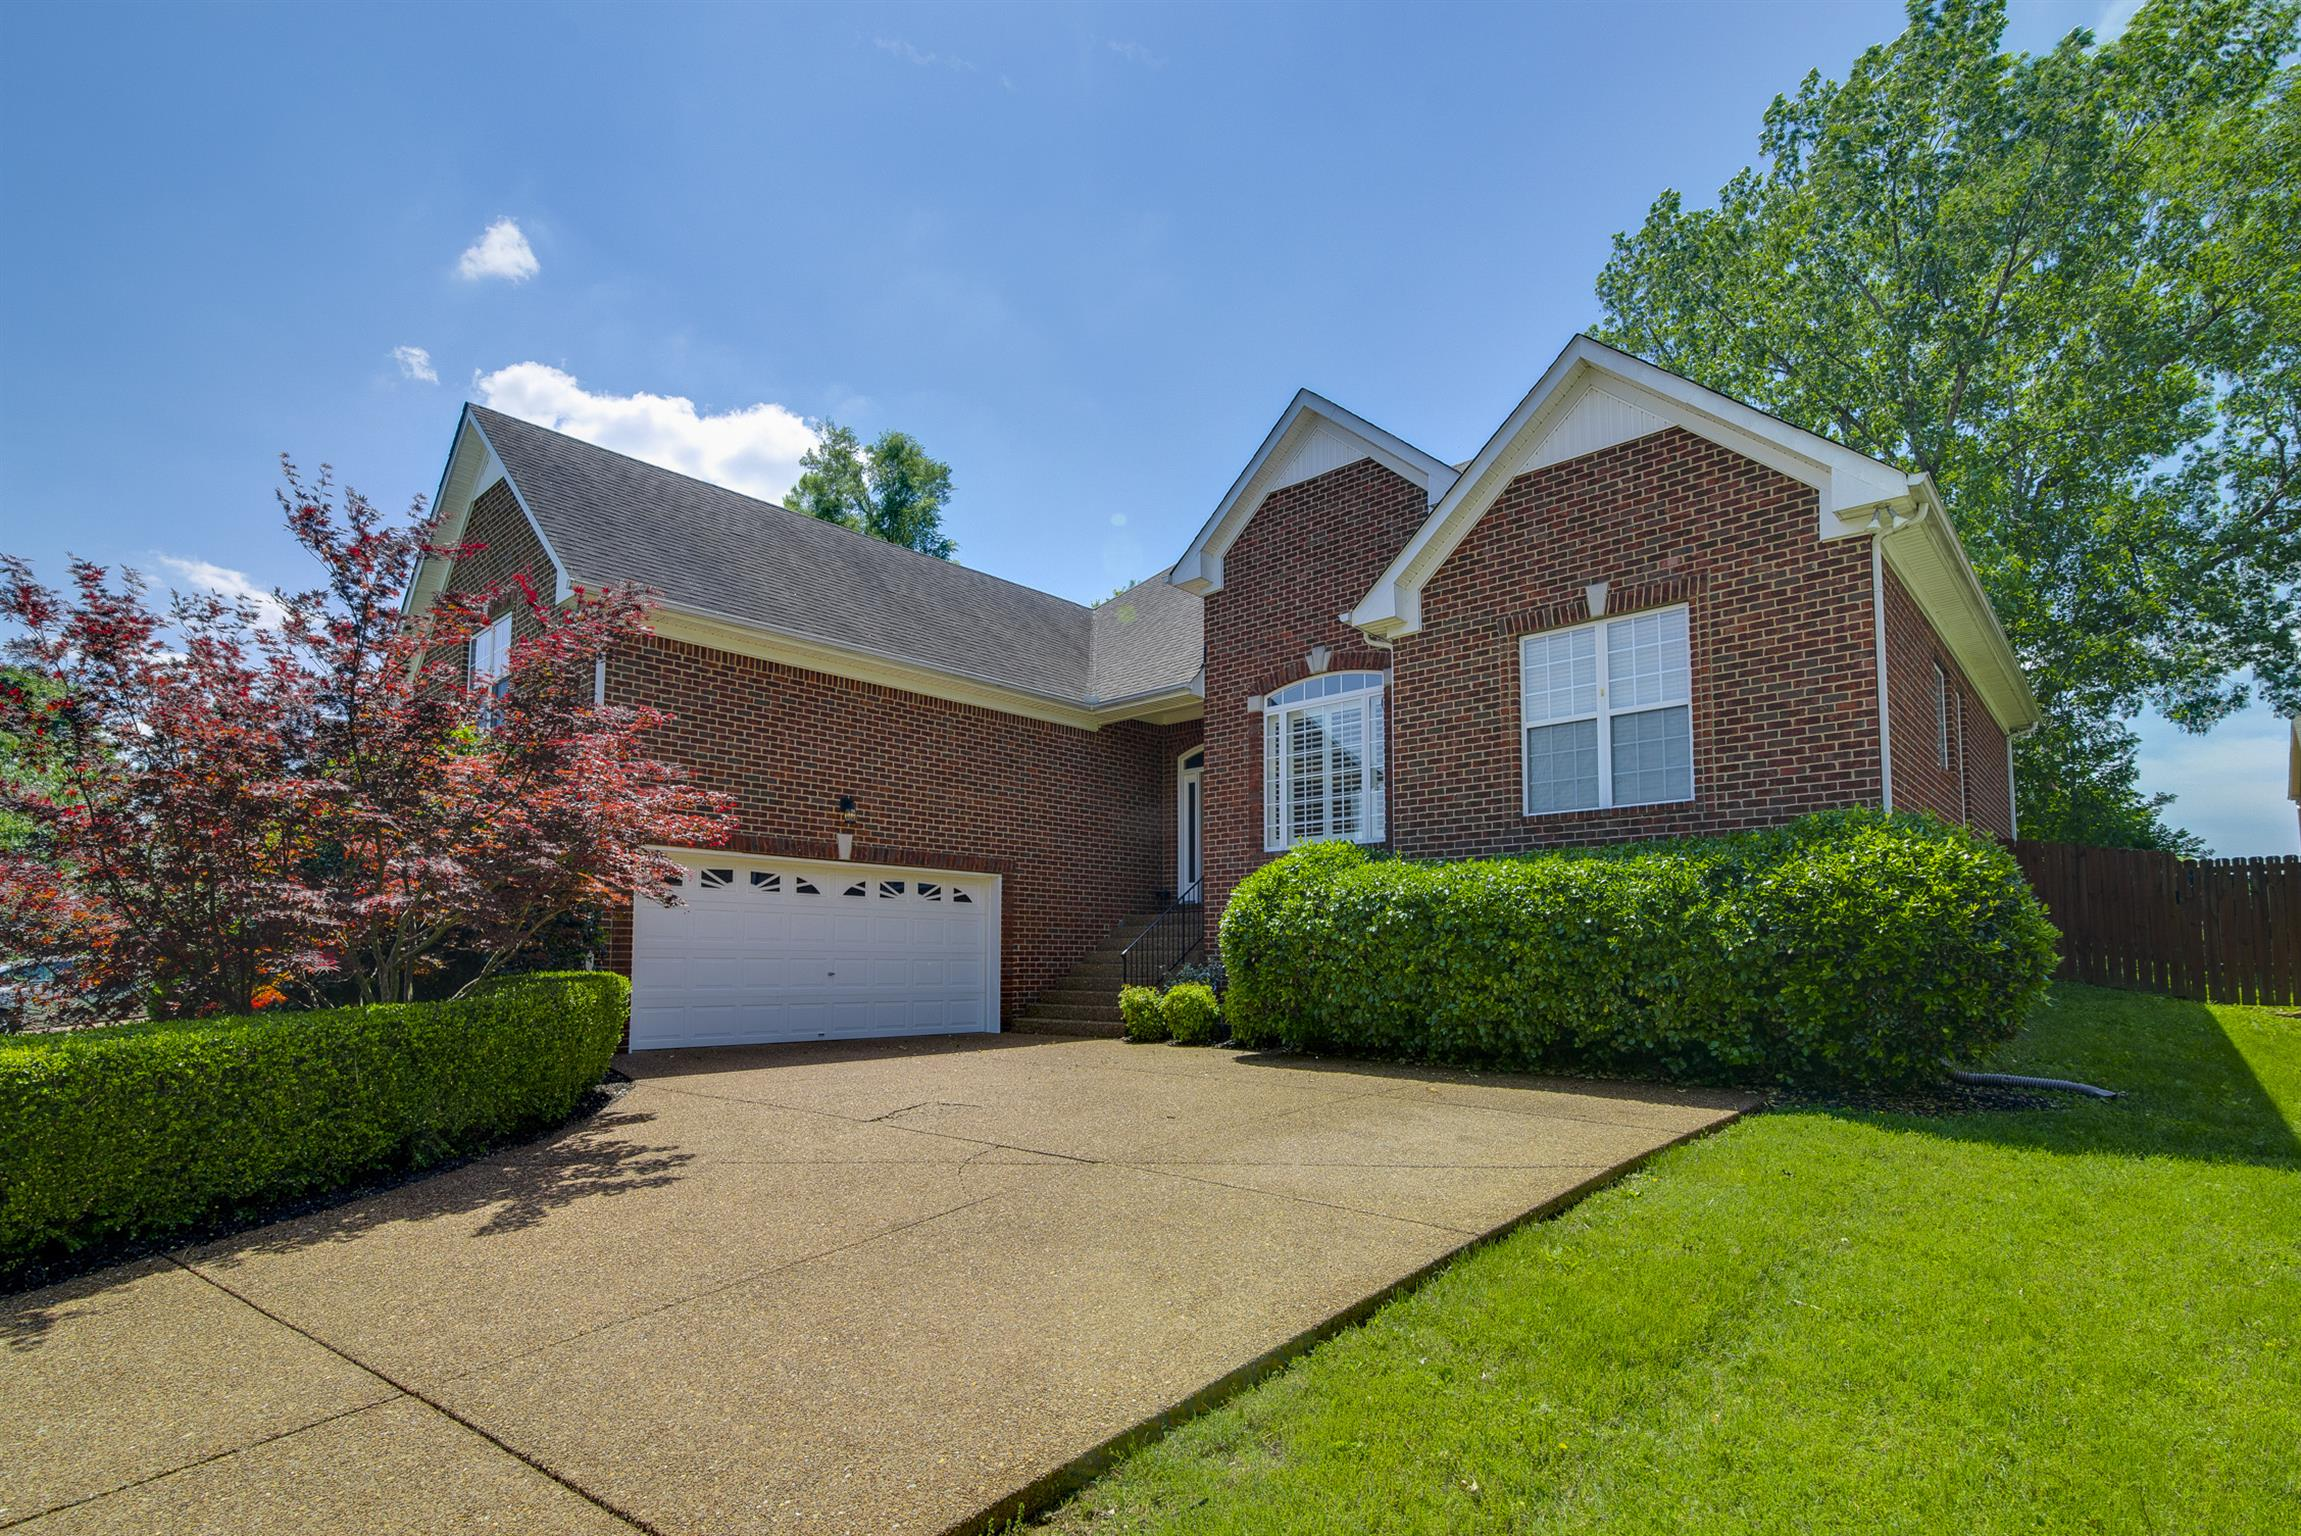 123 Lake Ridge Dr, Hendersonville in Sumner County County, TN 37075 Home for Sale